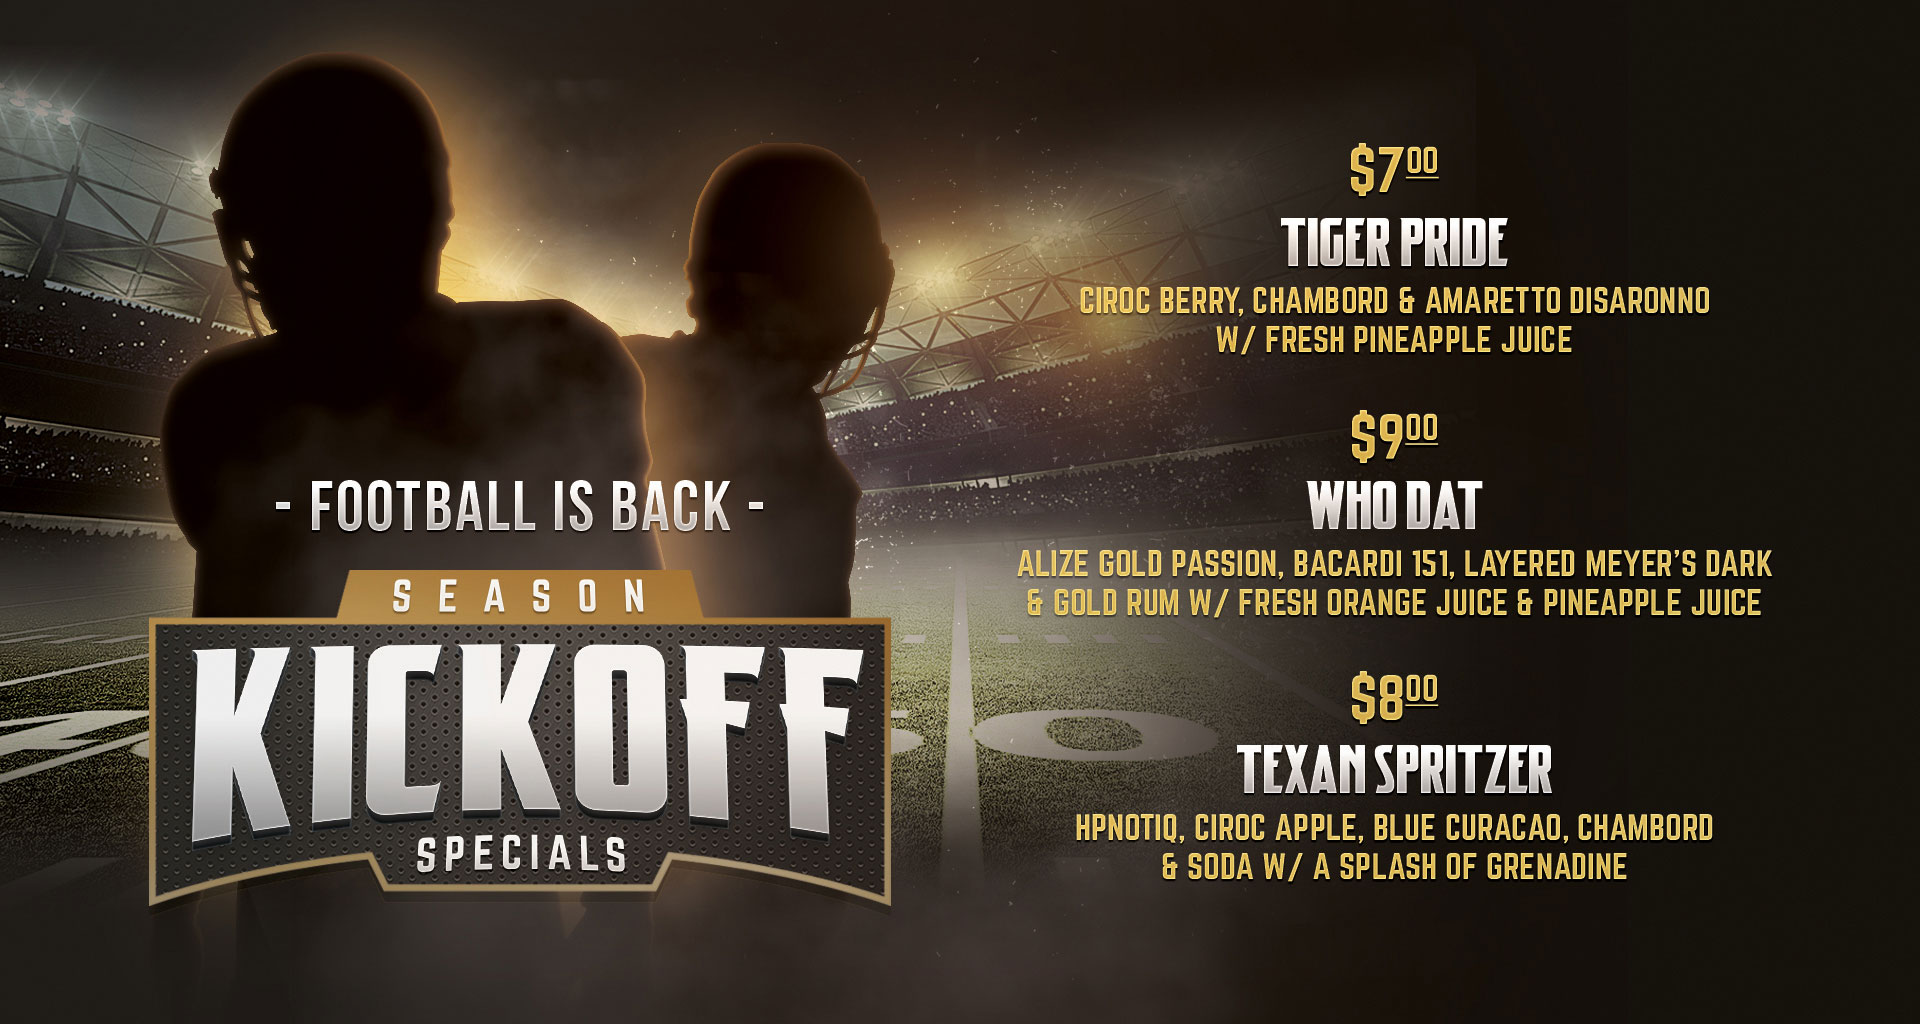 Football is Back - Season Kickoff Specials at OSK